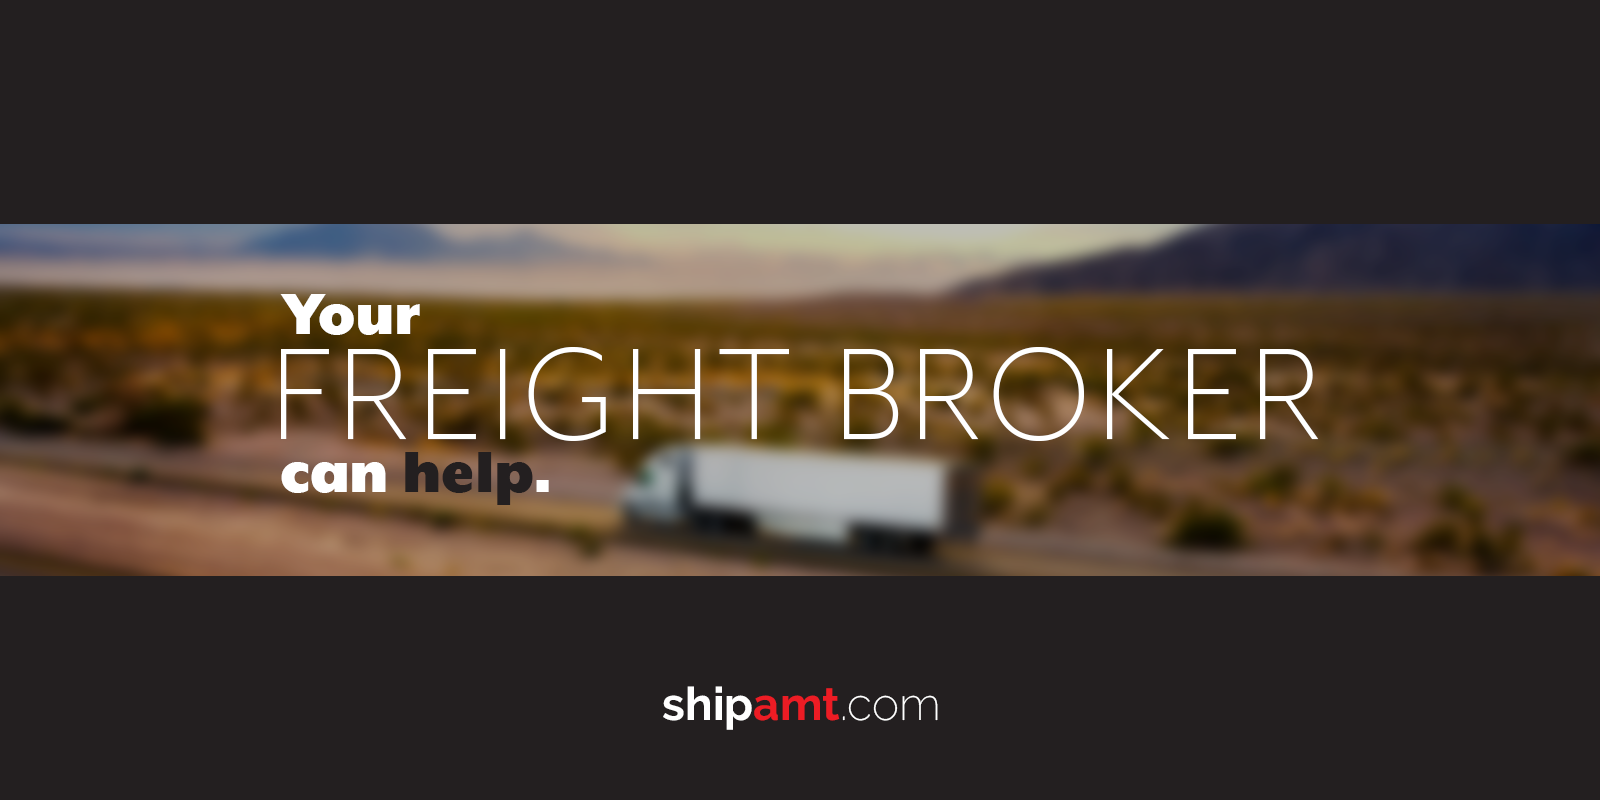 Your freight broker can help